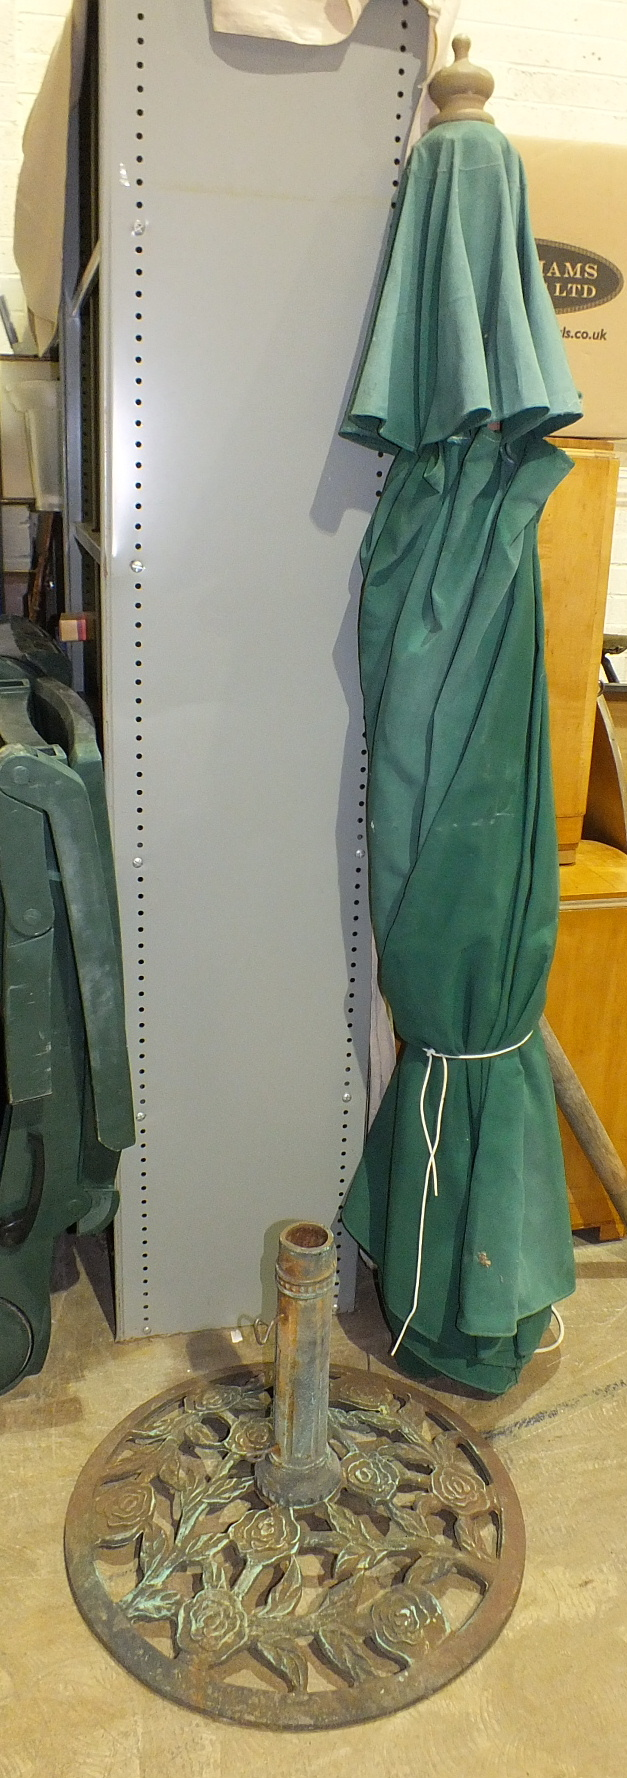 Lot 29 - A large garden parasol with stand.